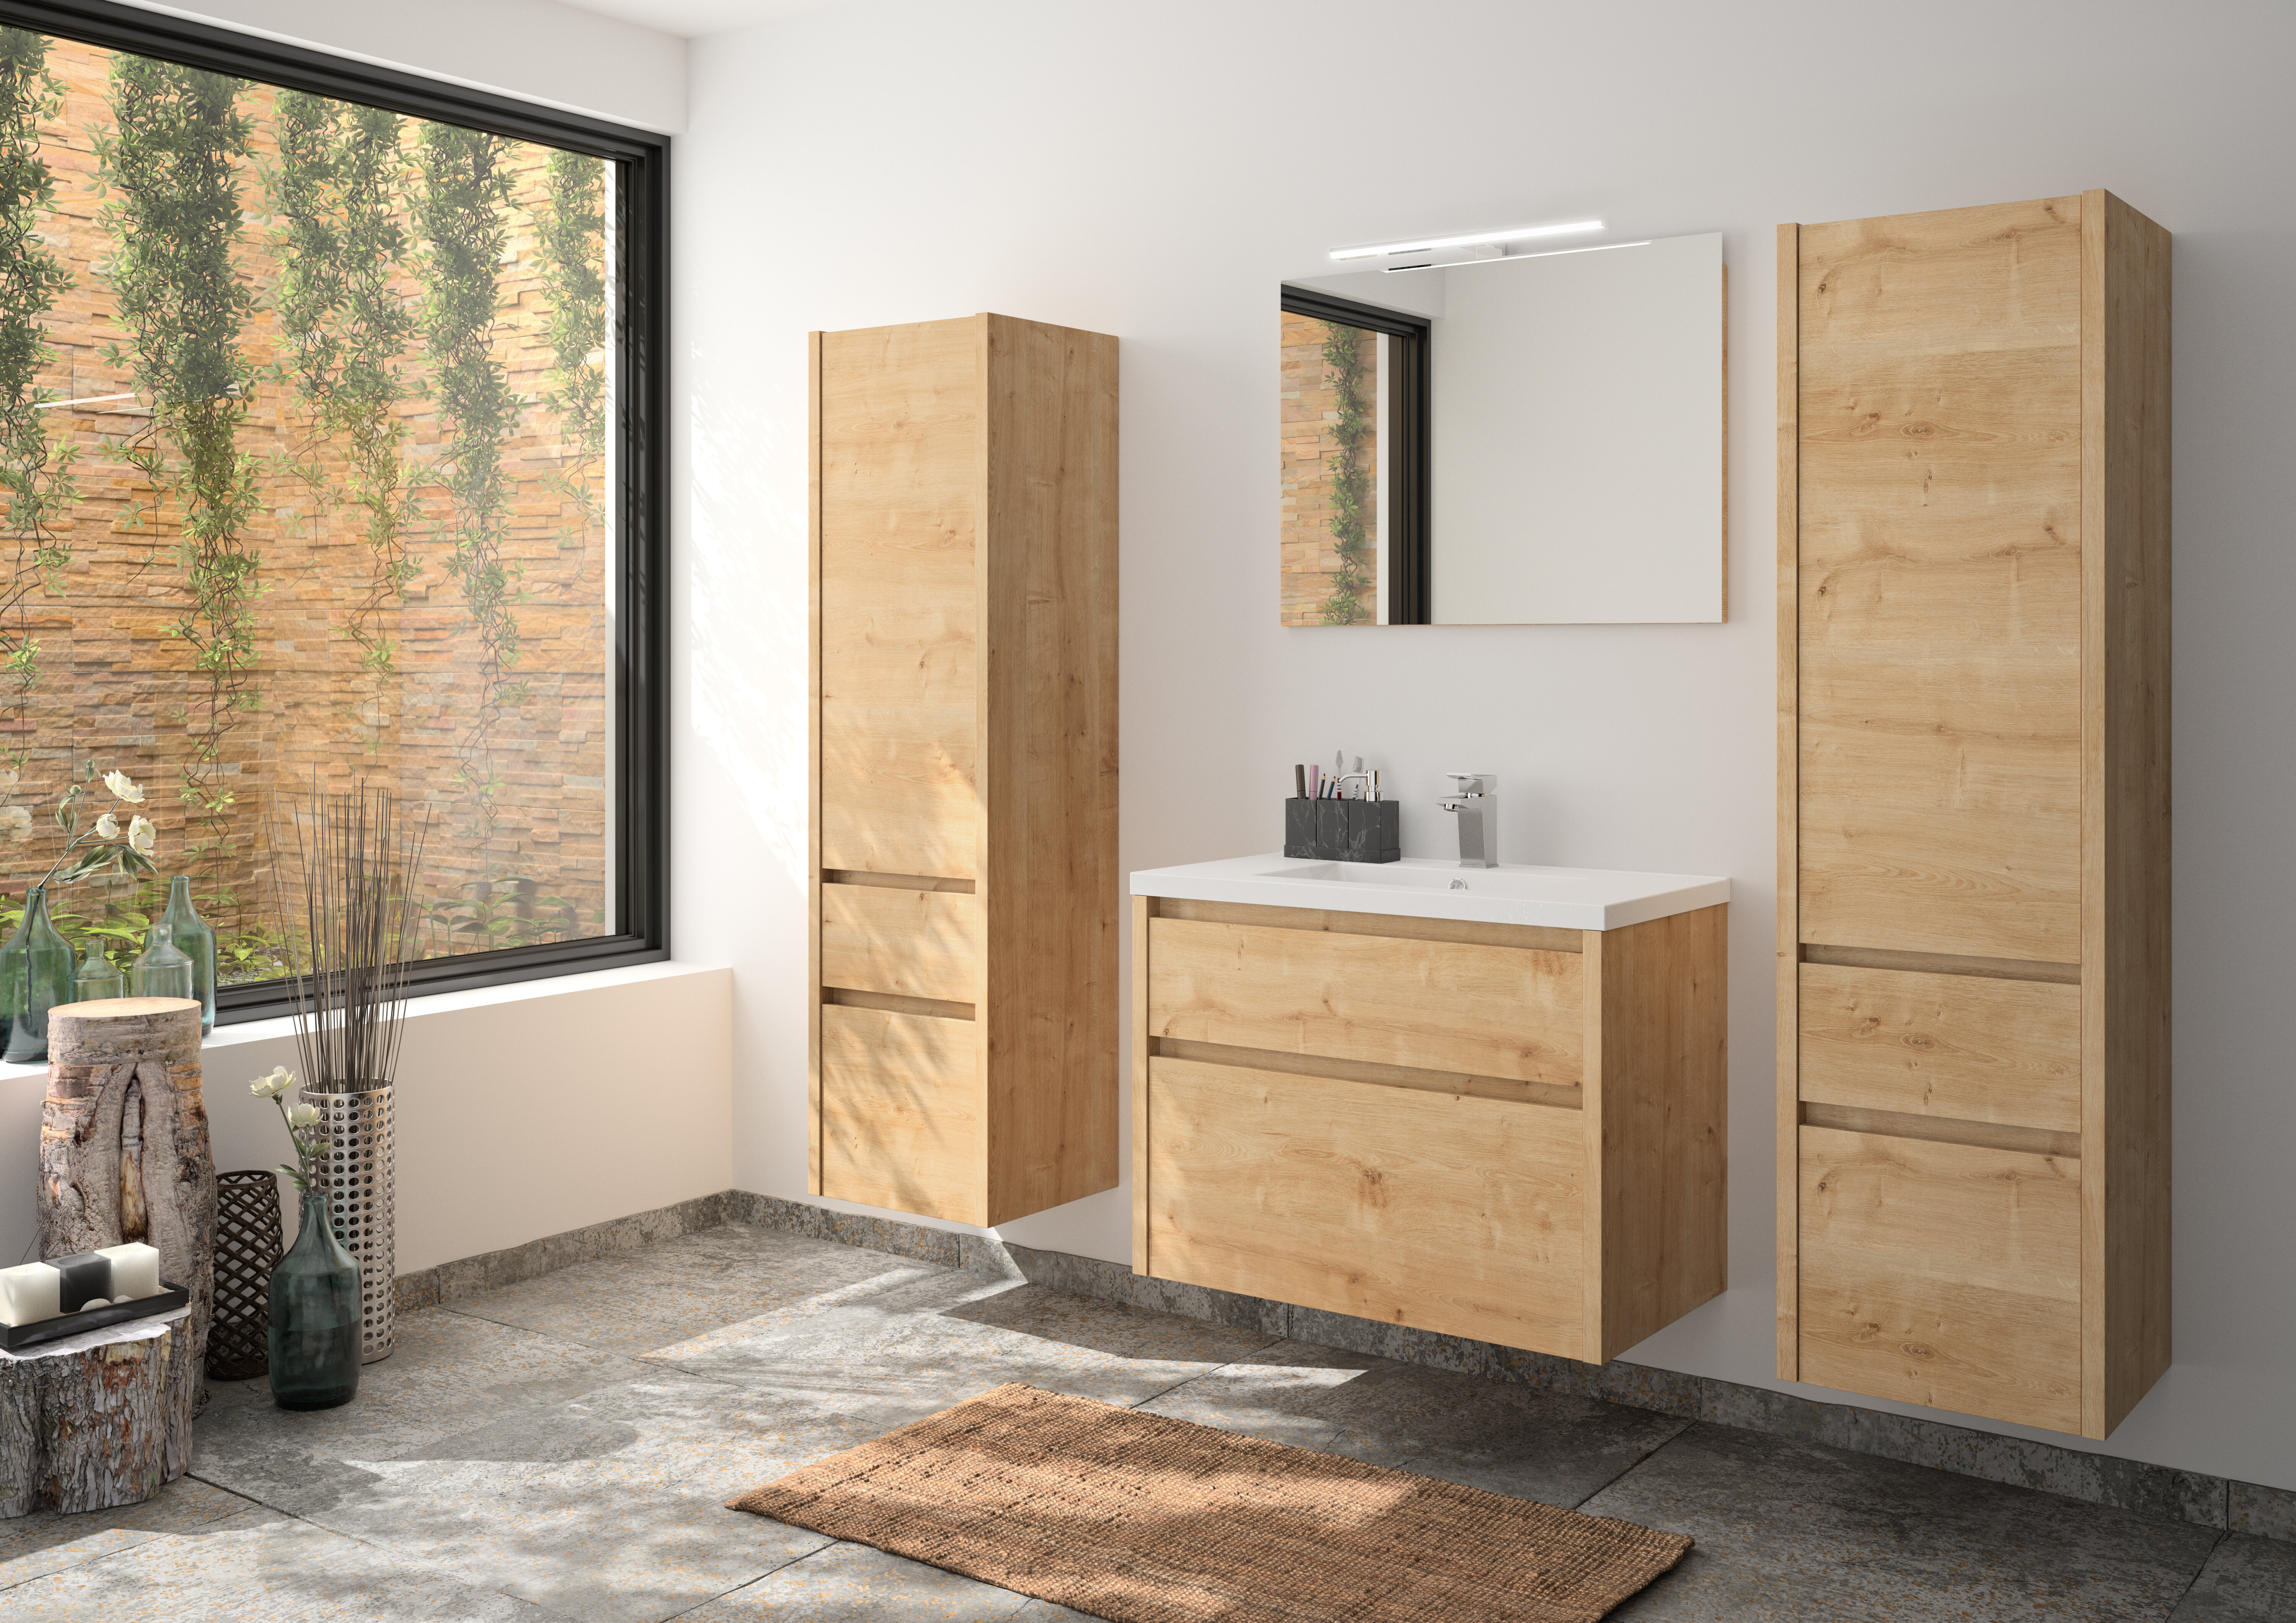 Hassell 10 mm Bathroom Furniture Suite with Mirror